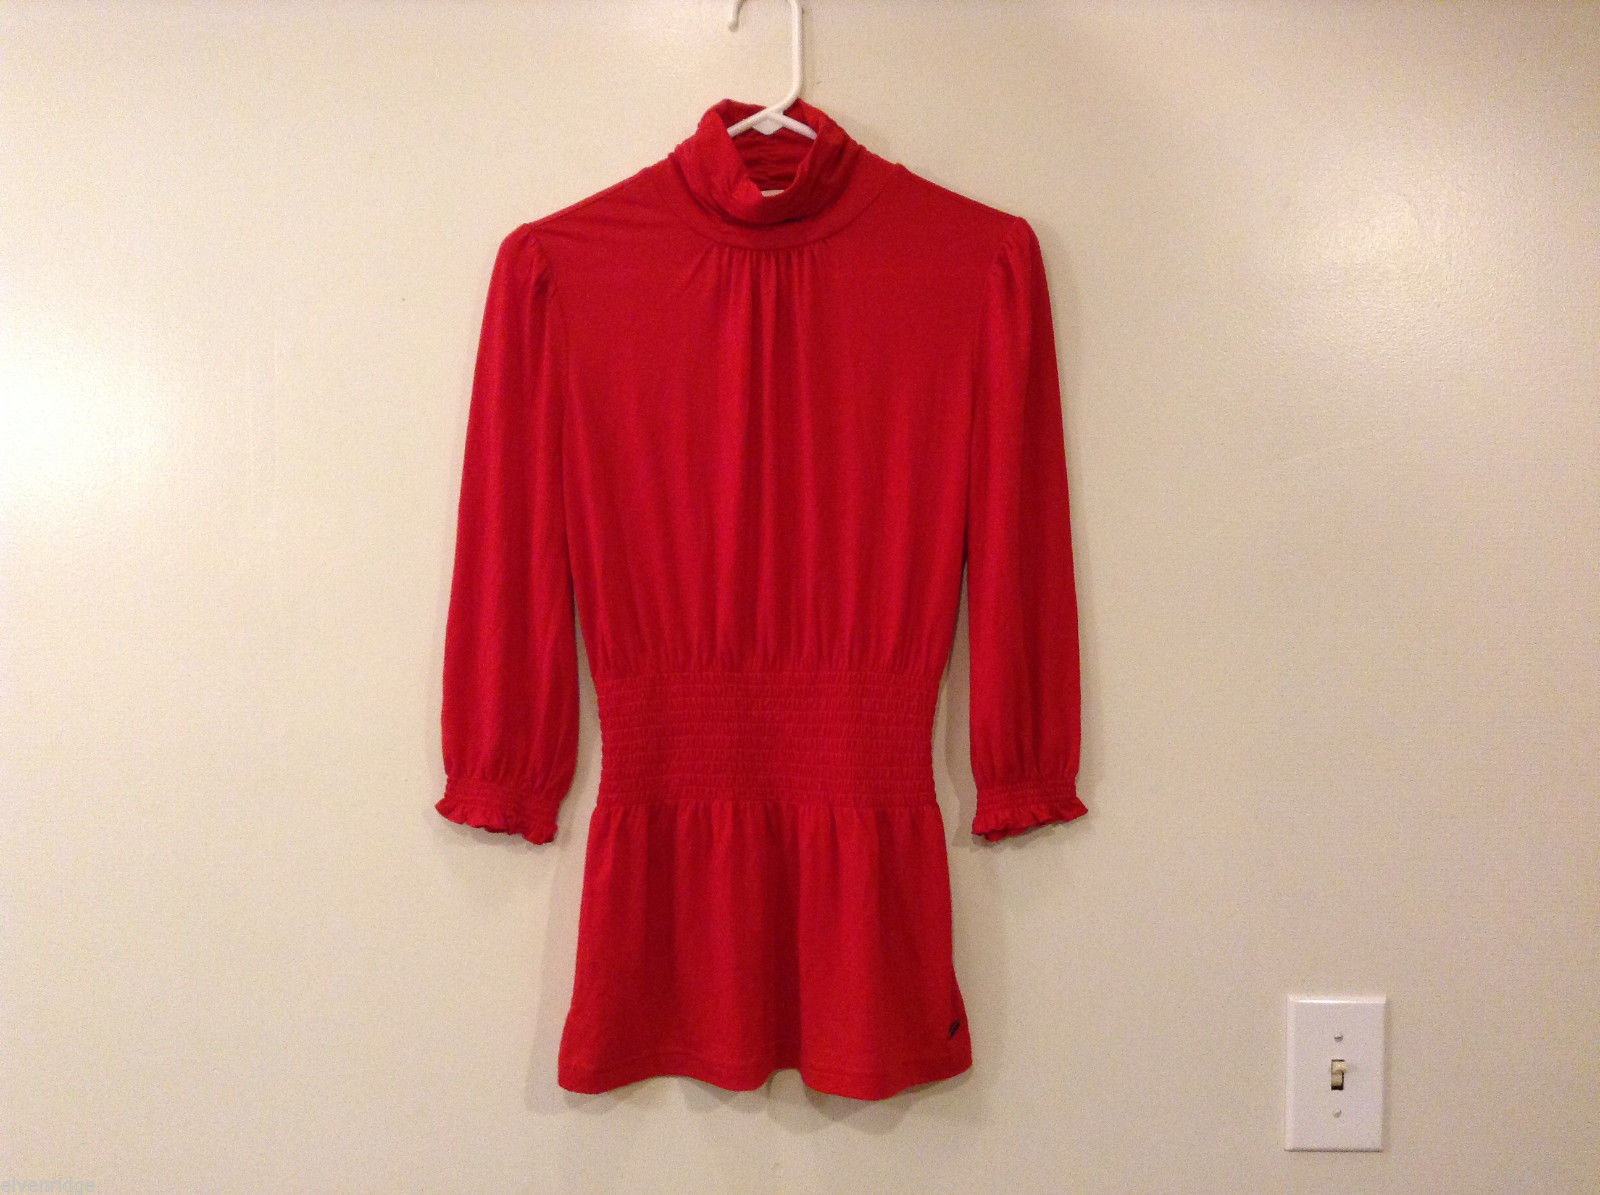 Ladies Candie's Scarlet Red Turtleneck Blouse Top 3/4 Sleeve, Size M, Elastic